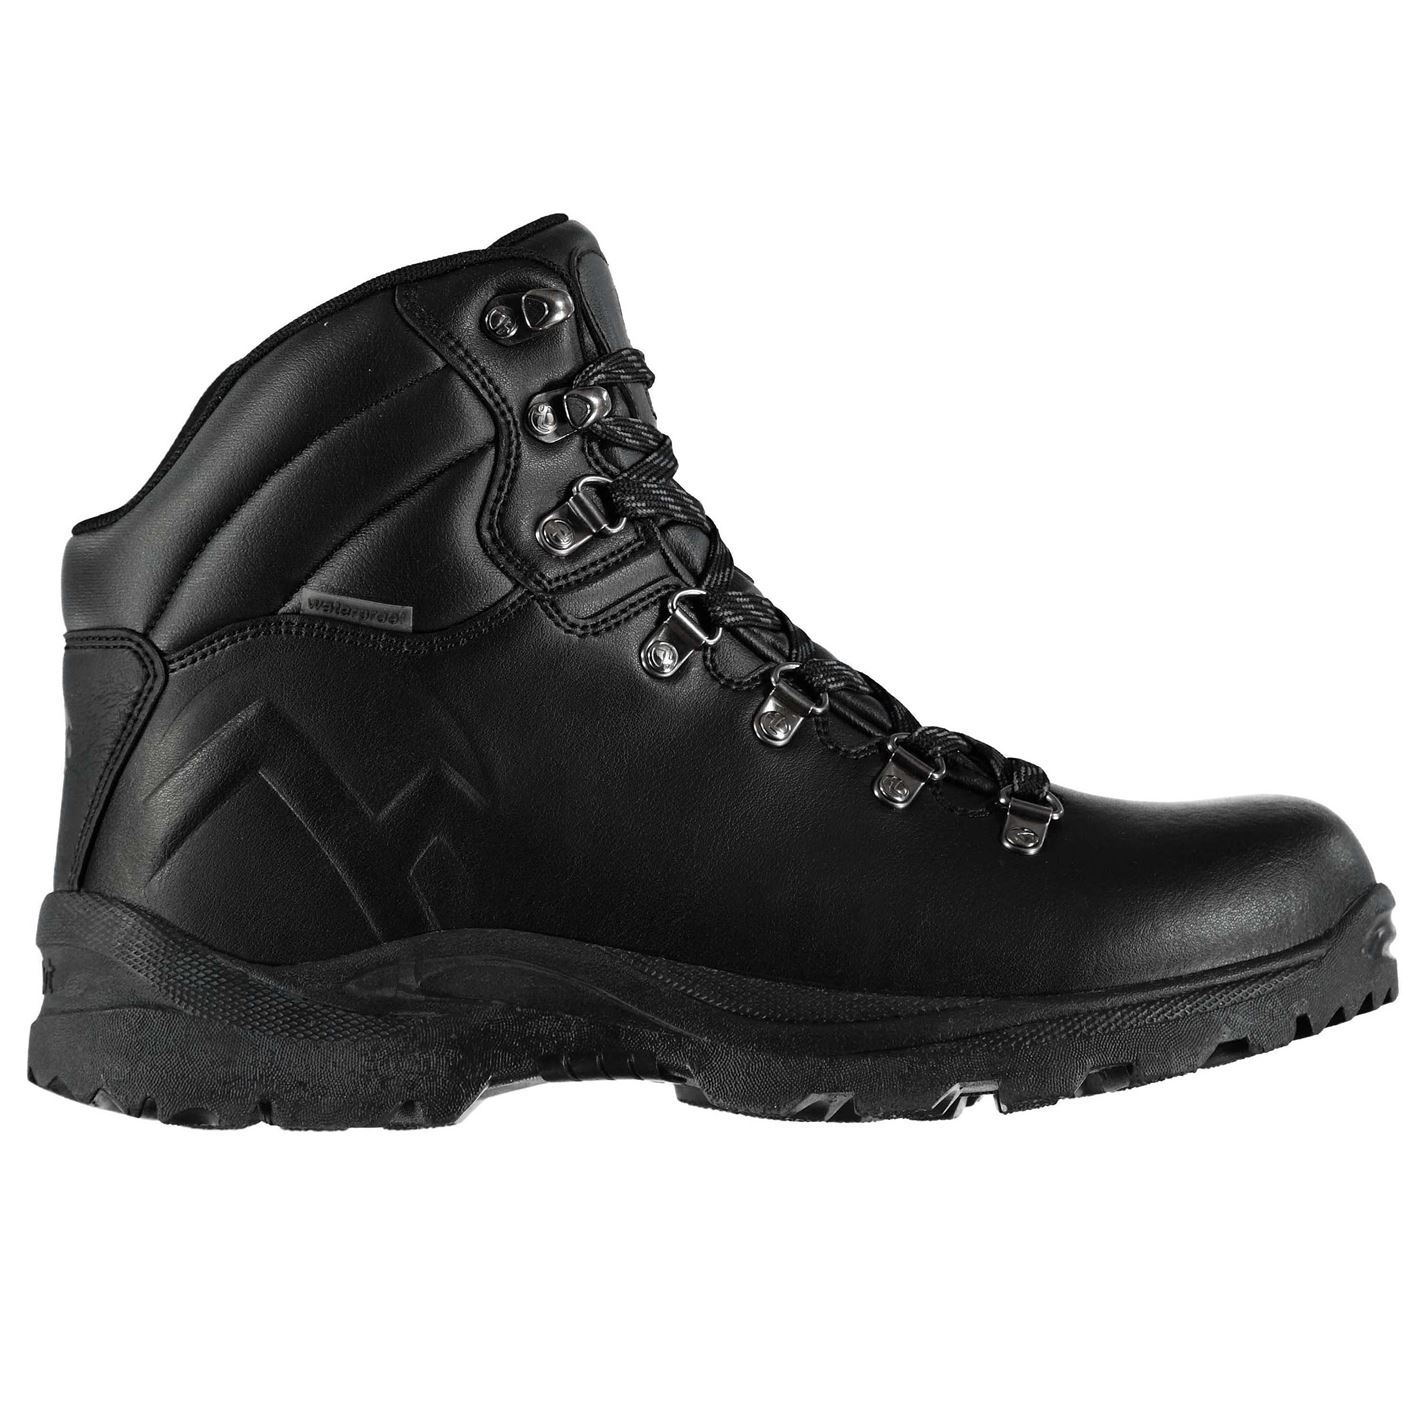 Gelert  Herren Atlantis Walking Stiefel Schuhes Lace Padded Up Waterproof Padded Lace Ankle Collar 48e93d